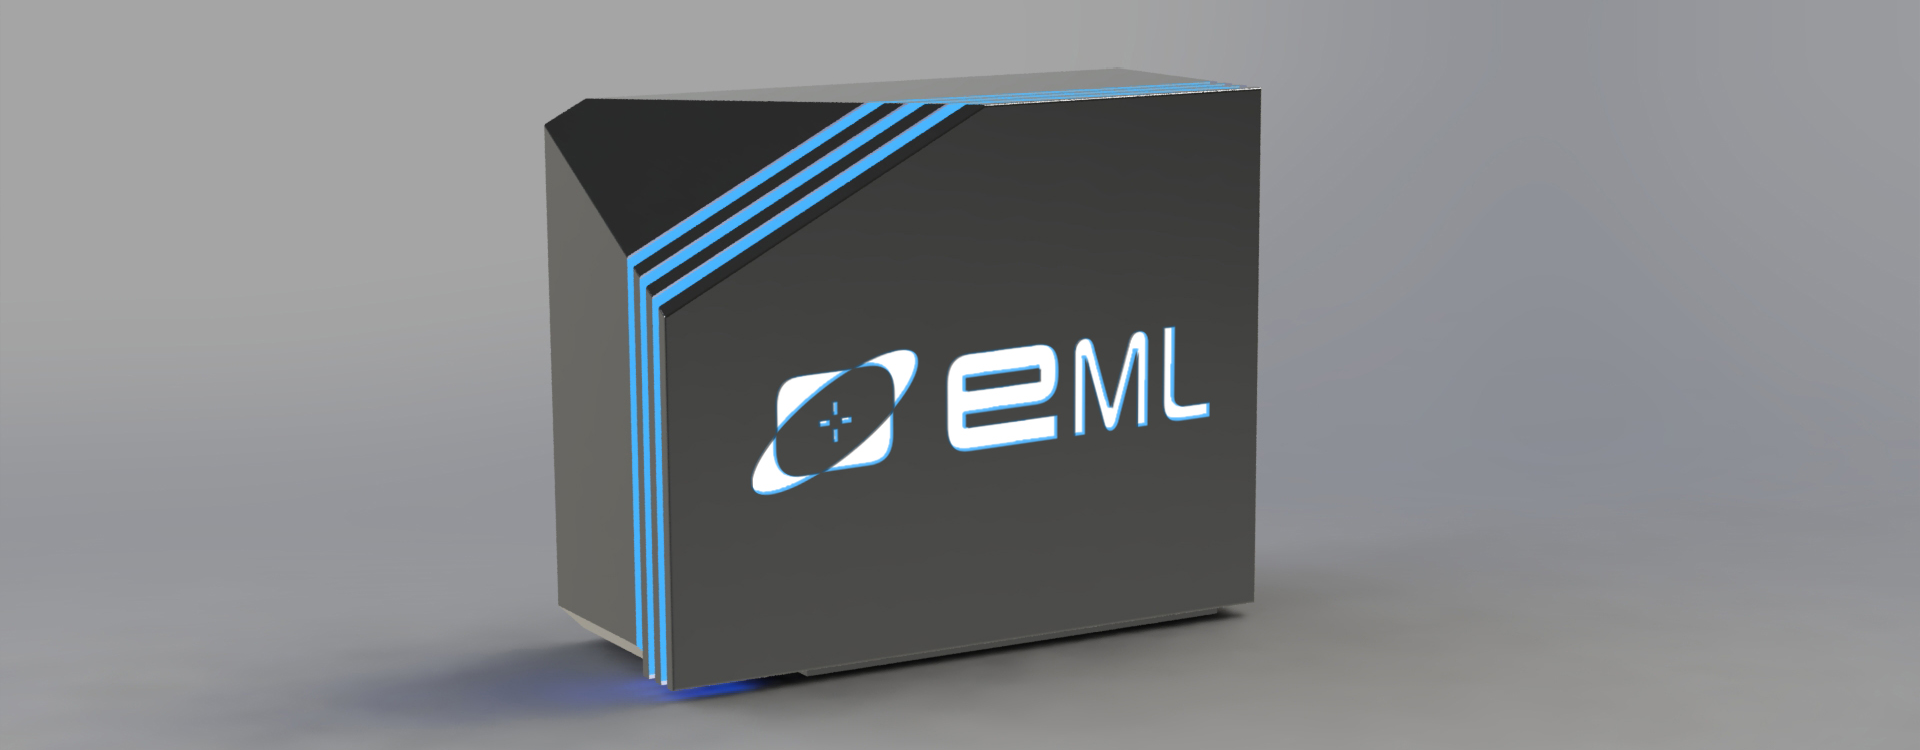 eML | enders Machine Learning